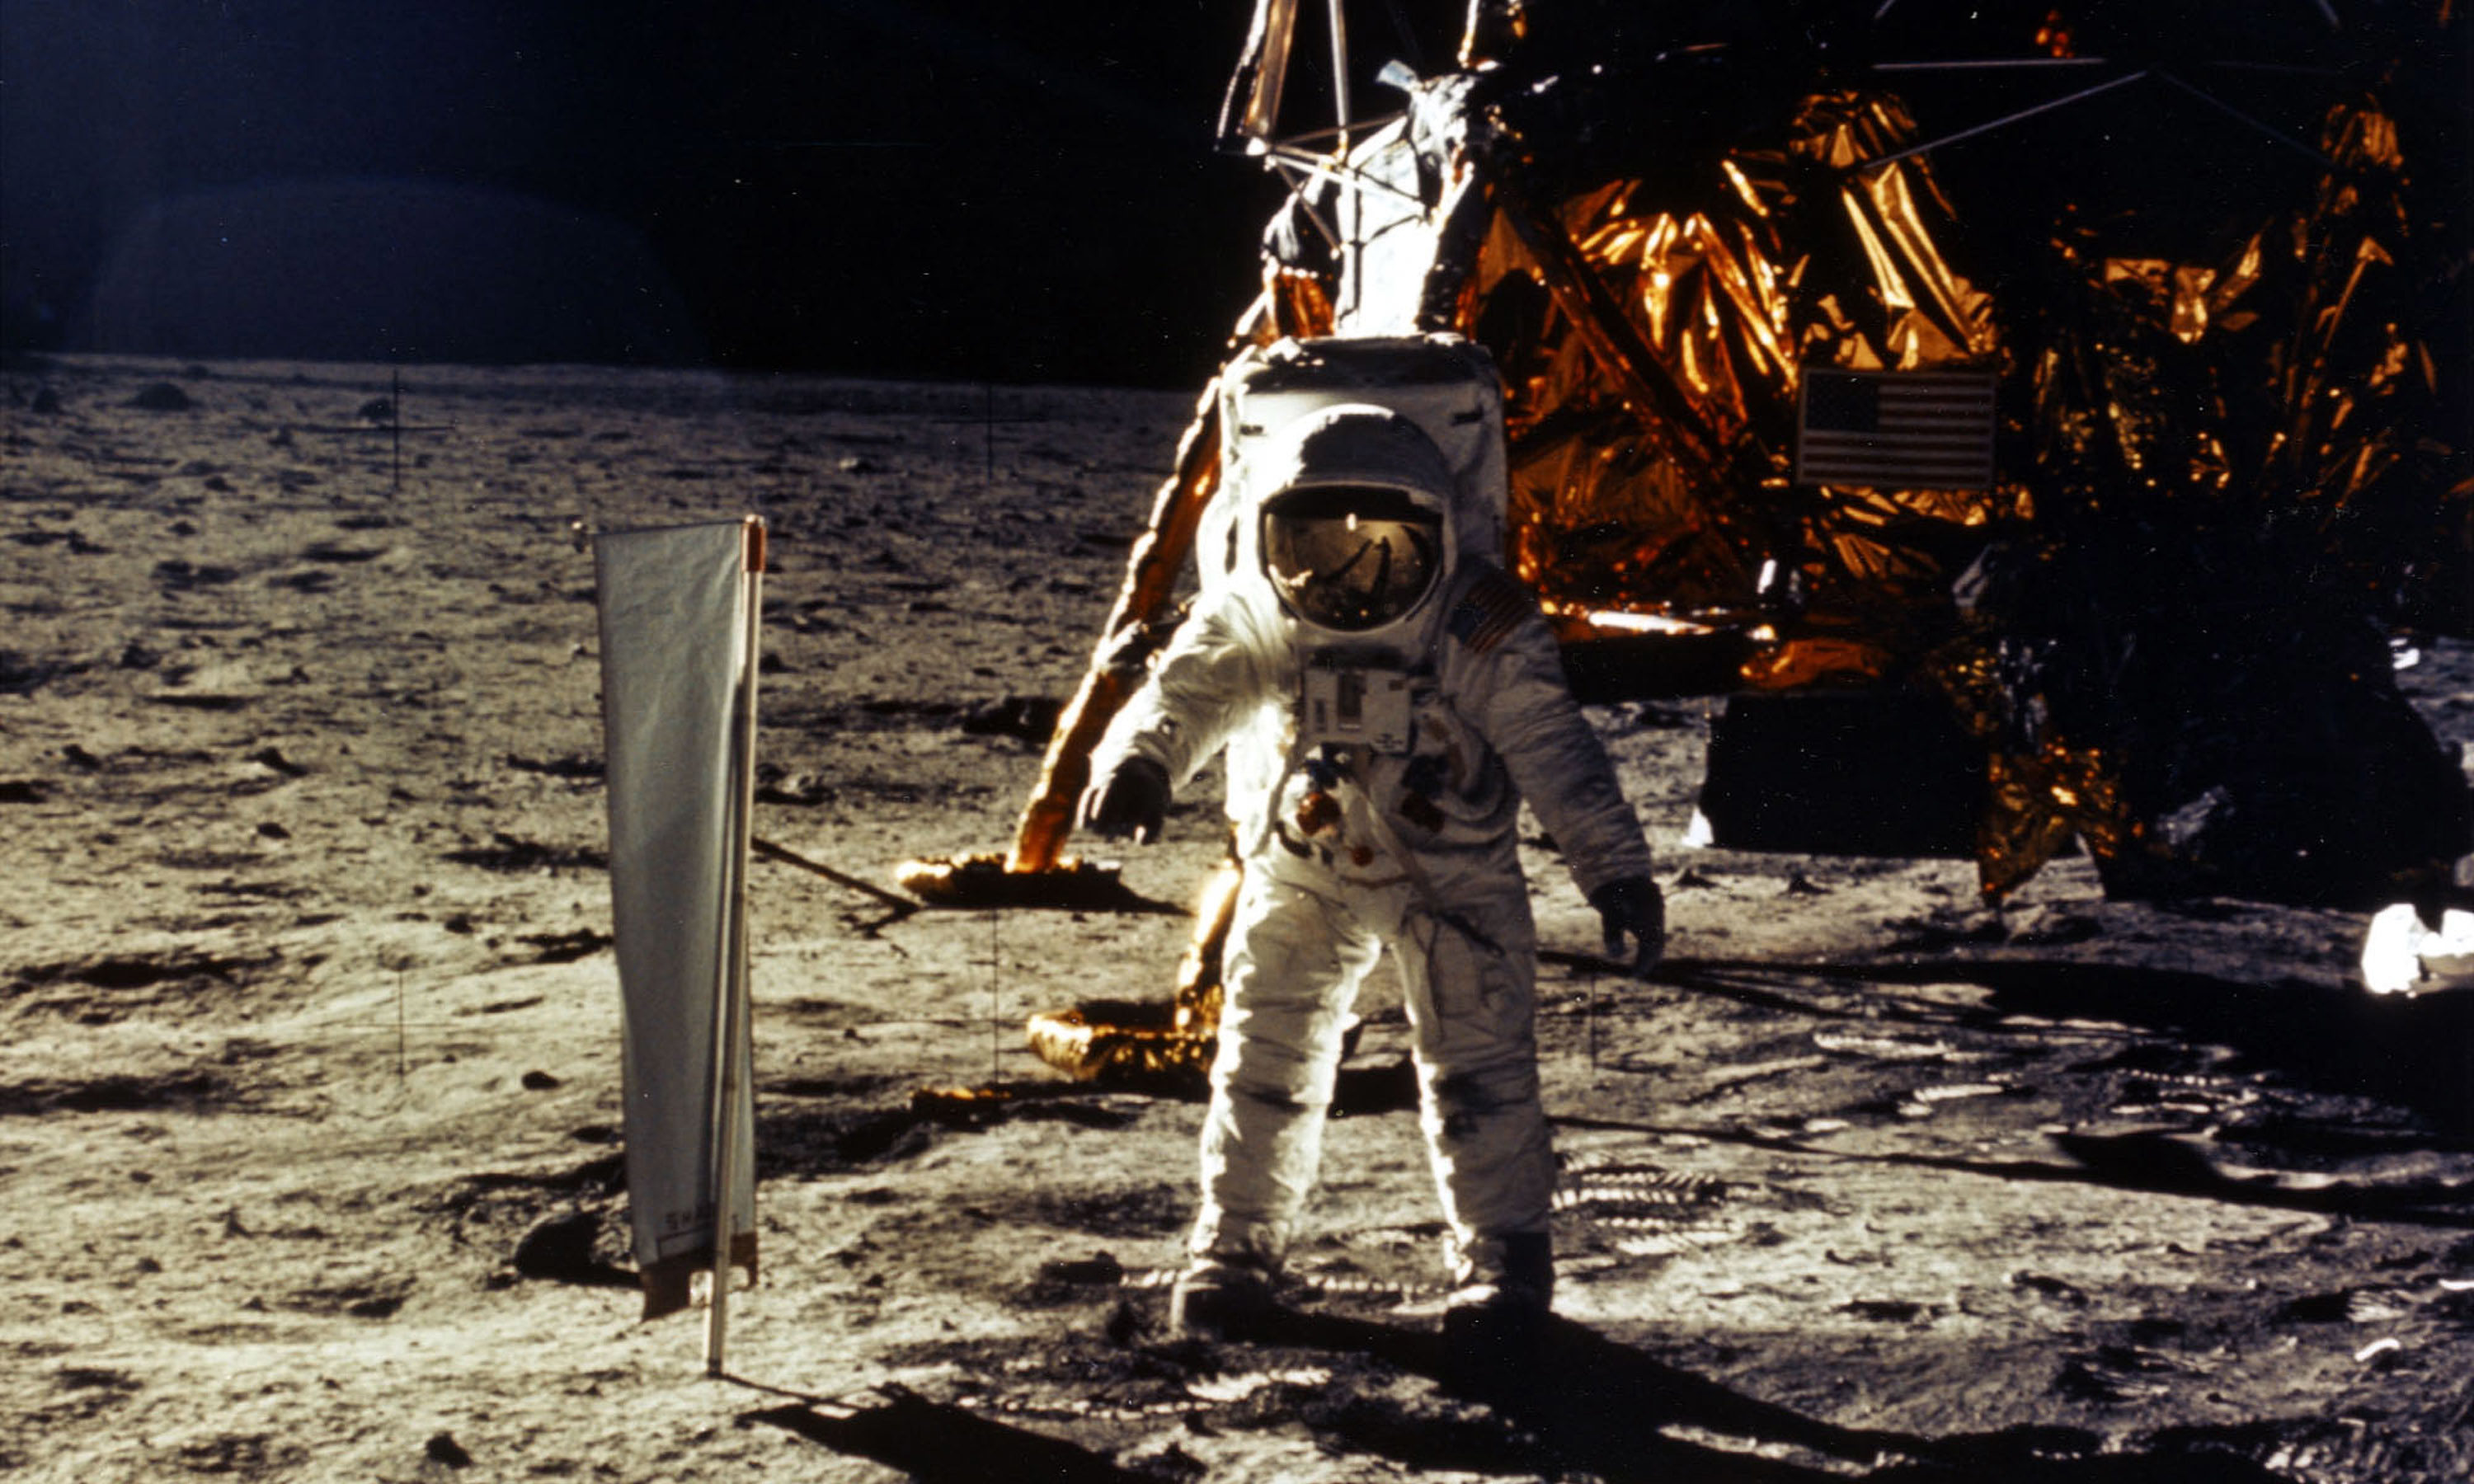 WL Gore assembles wiring for space missions in Dundee. Buzz Aldrin on the moon in 1969. Picture: Getty Images.